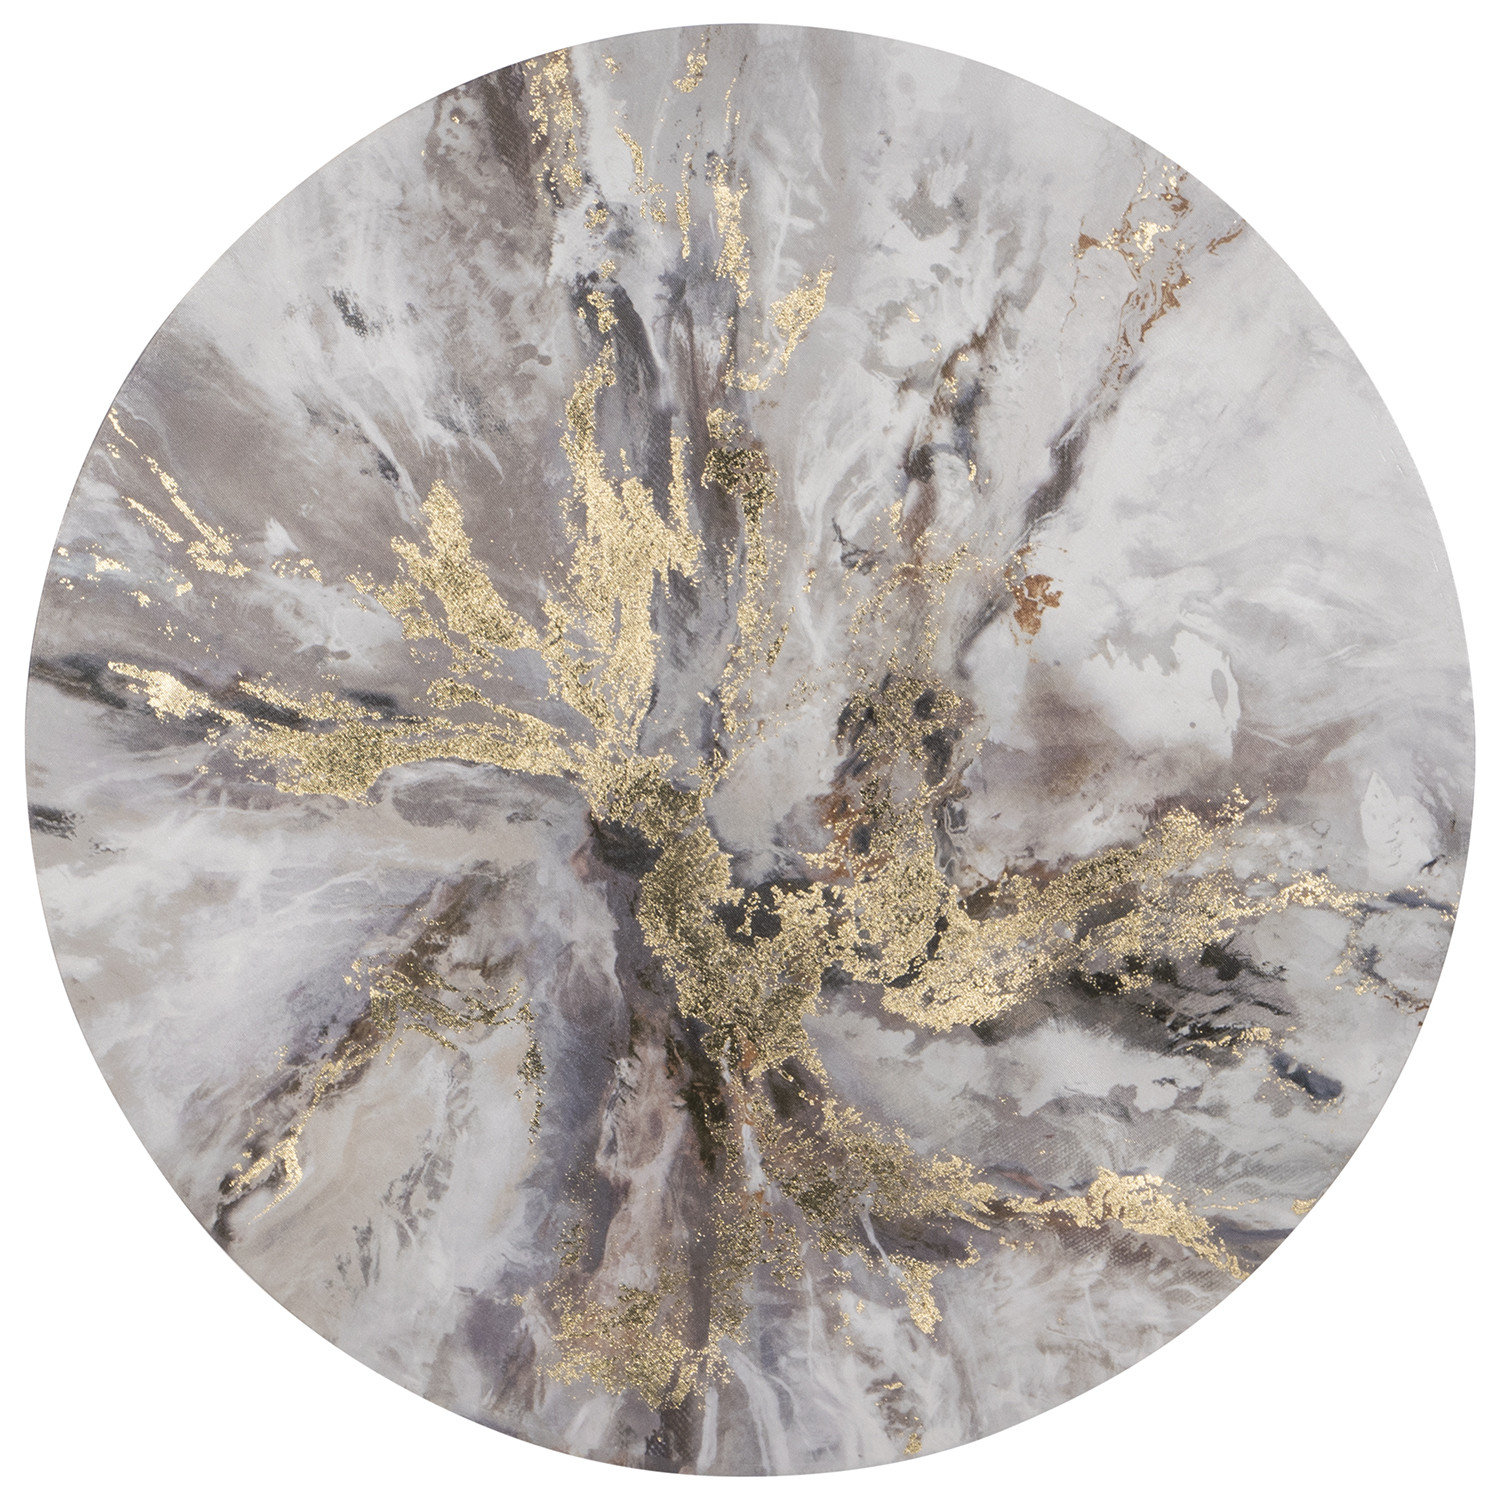 Gold Splash Round Wall Art Intended For Contemporary Abstract Round Wall Decor (View 9 of 30)